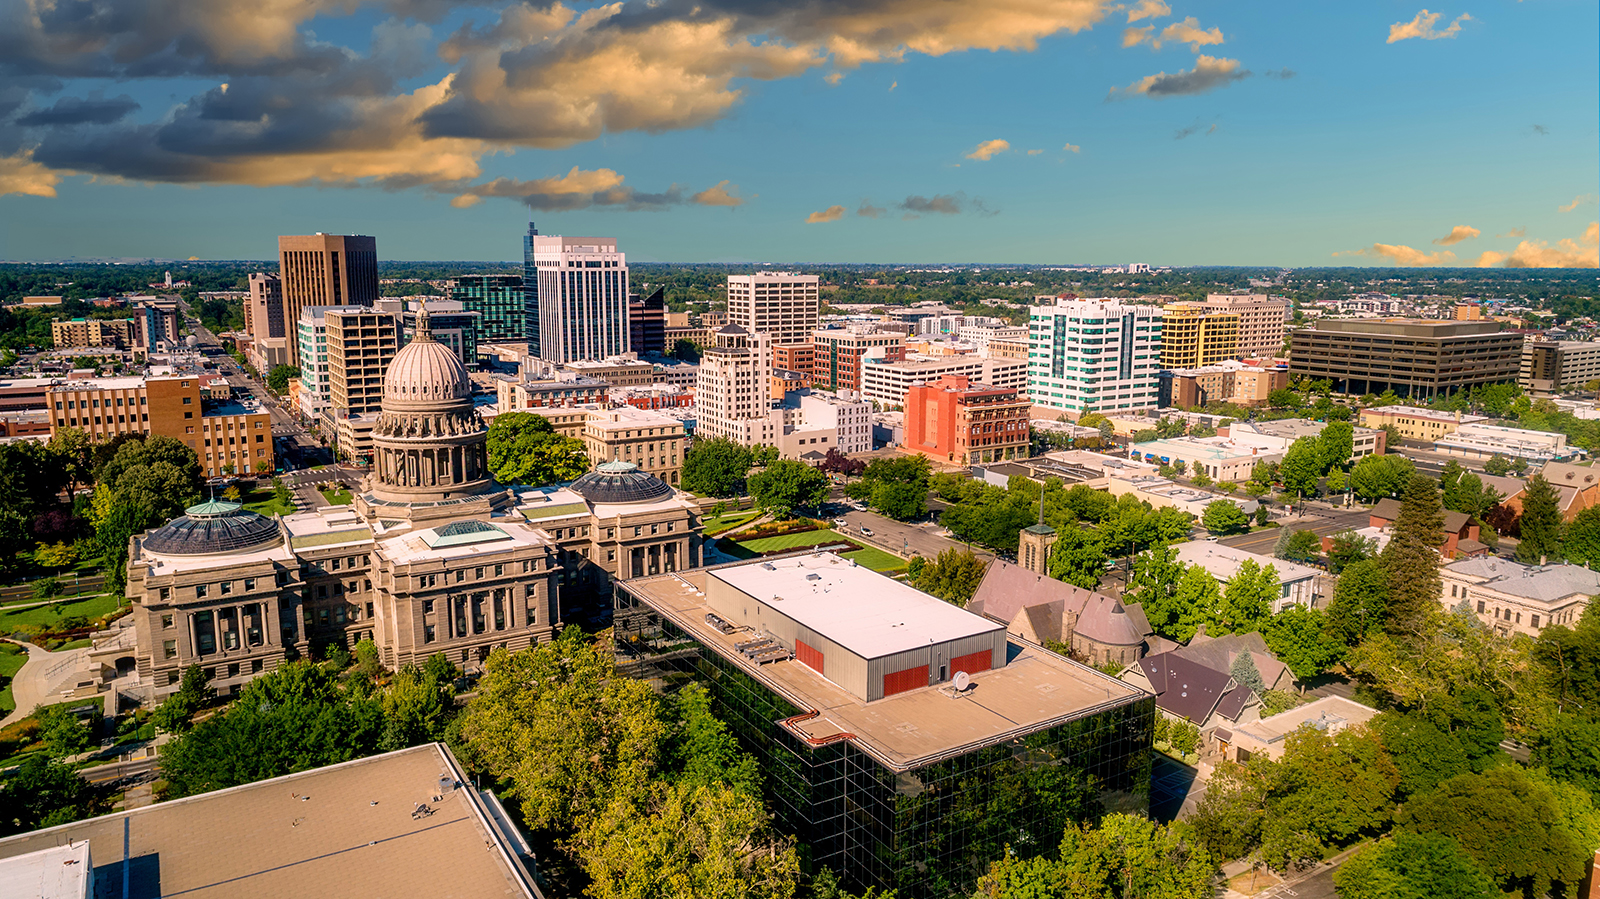 Aerial view of the Boise Idaho skyline in the morning light